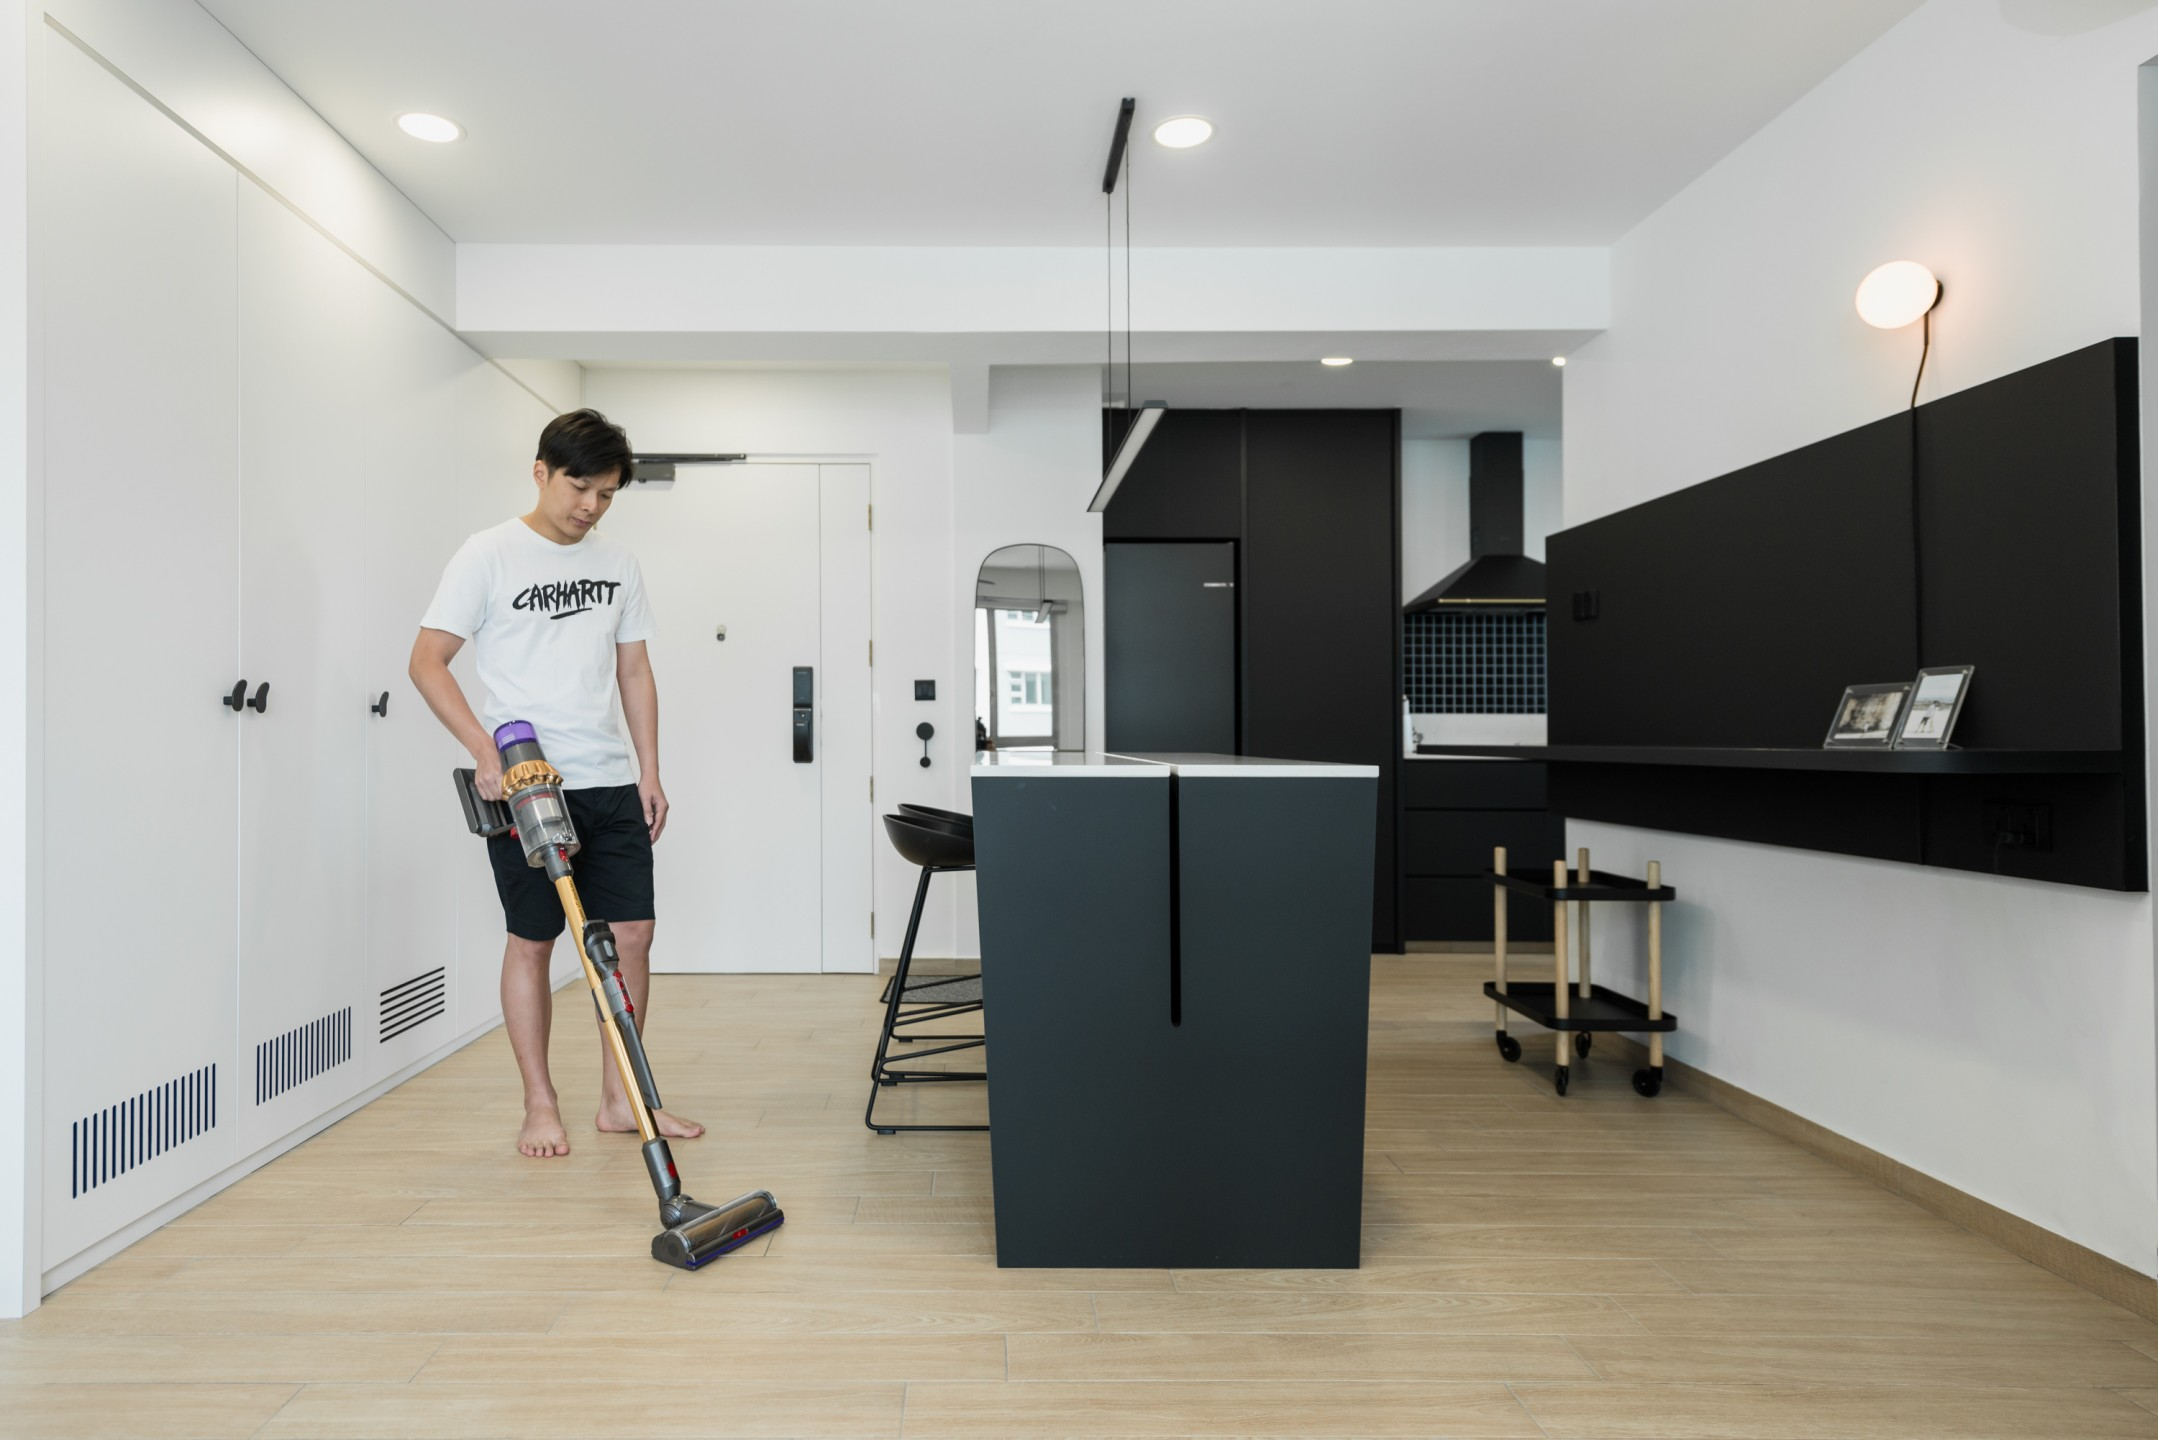 squarerooms-dyson-home-appliance-lifestyle-monochromatic-sleek-man-cleaning-vacuum-kitchen